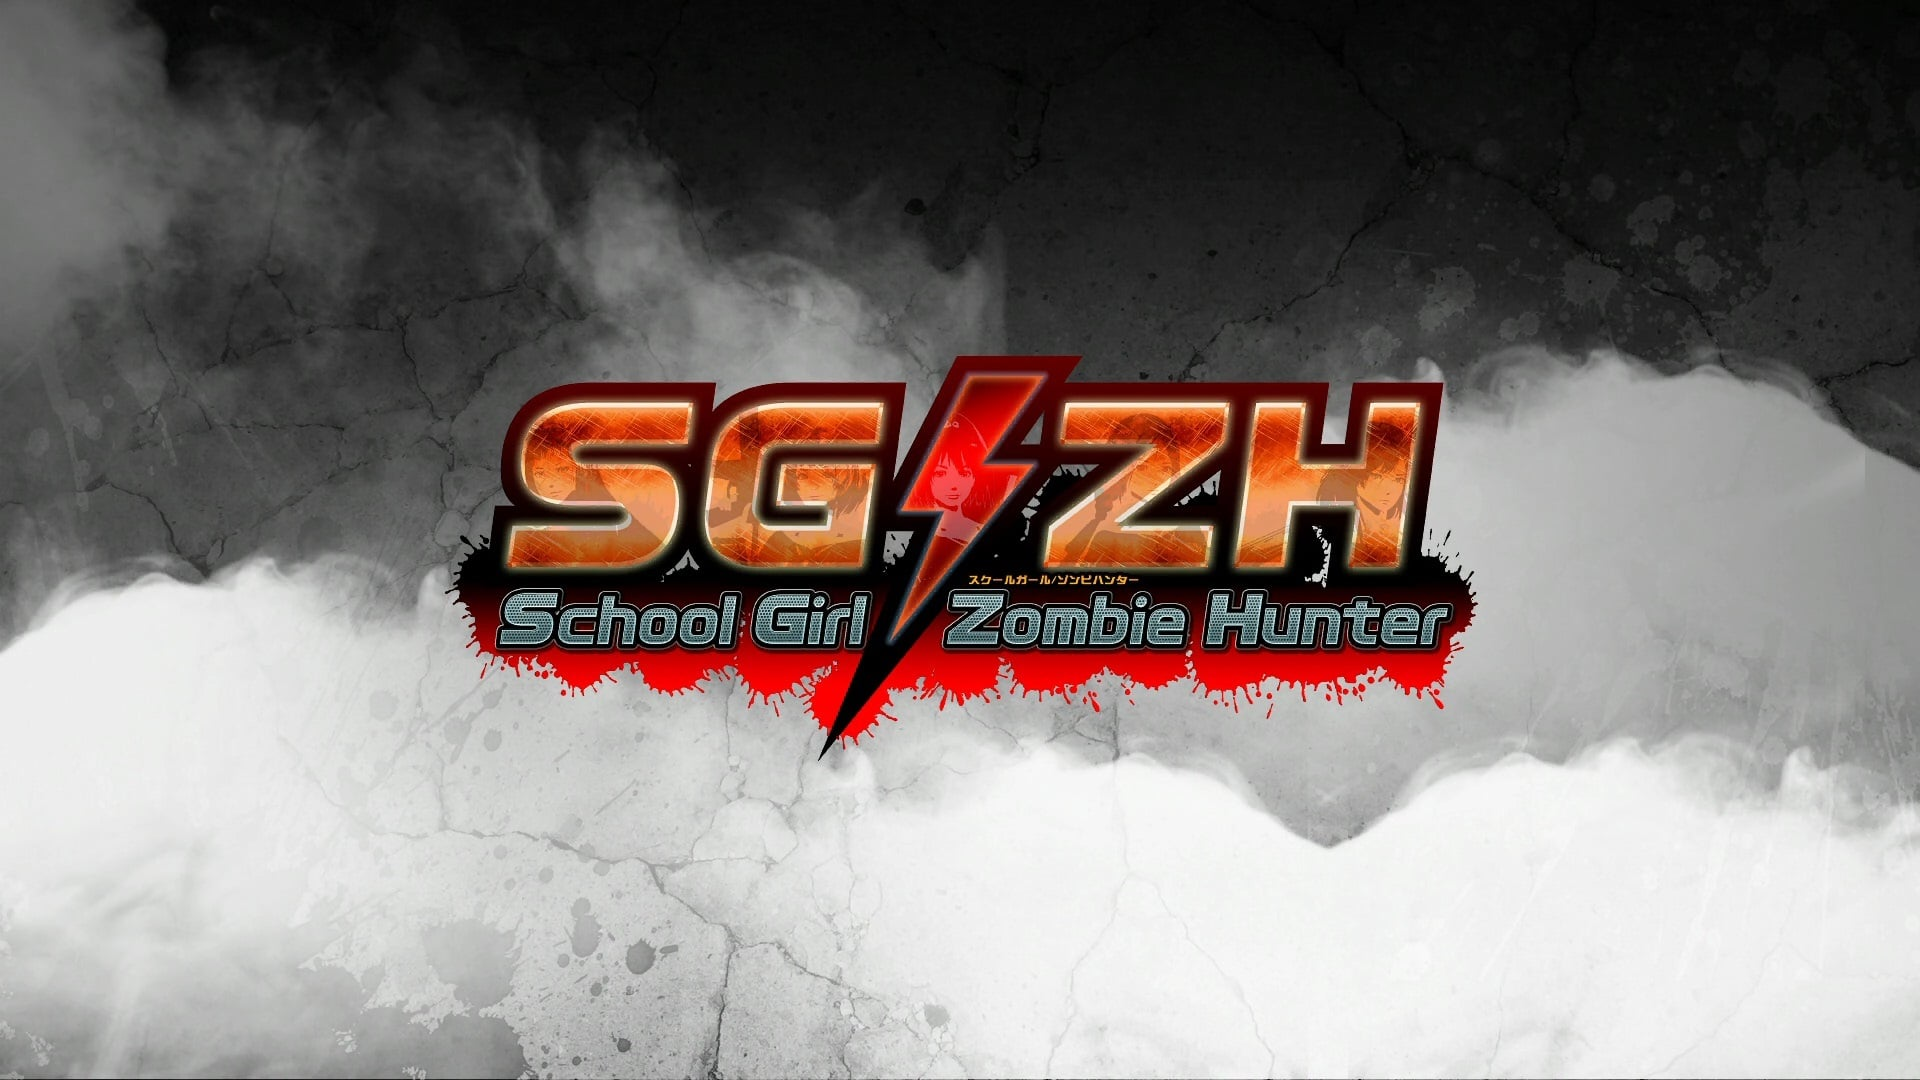 SG/ZH [School Girl / Zombie Hunter] (PS4) Review